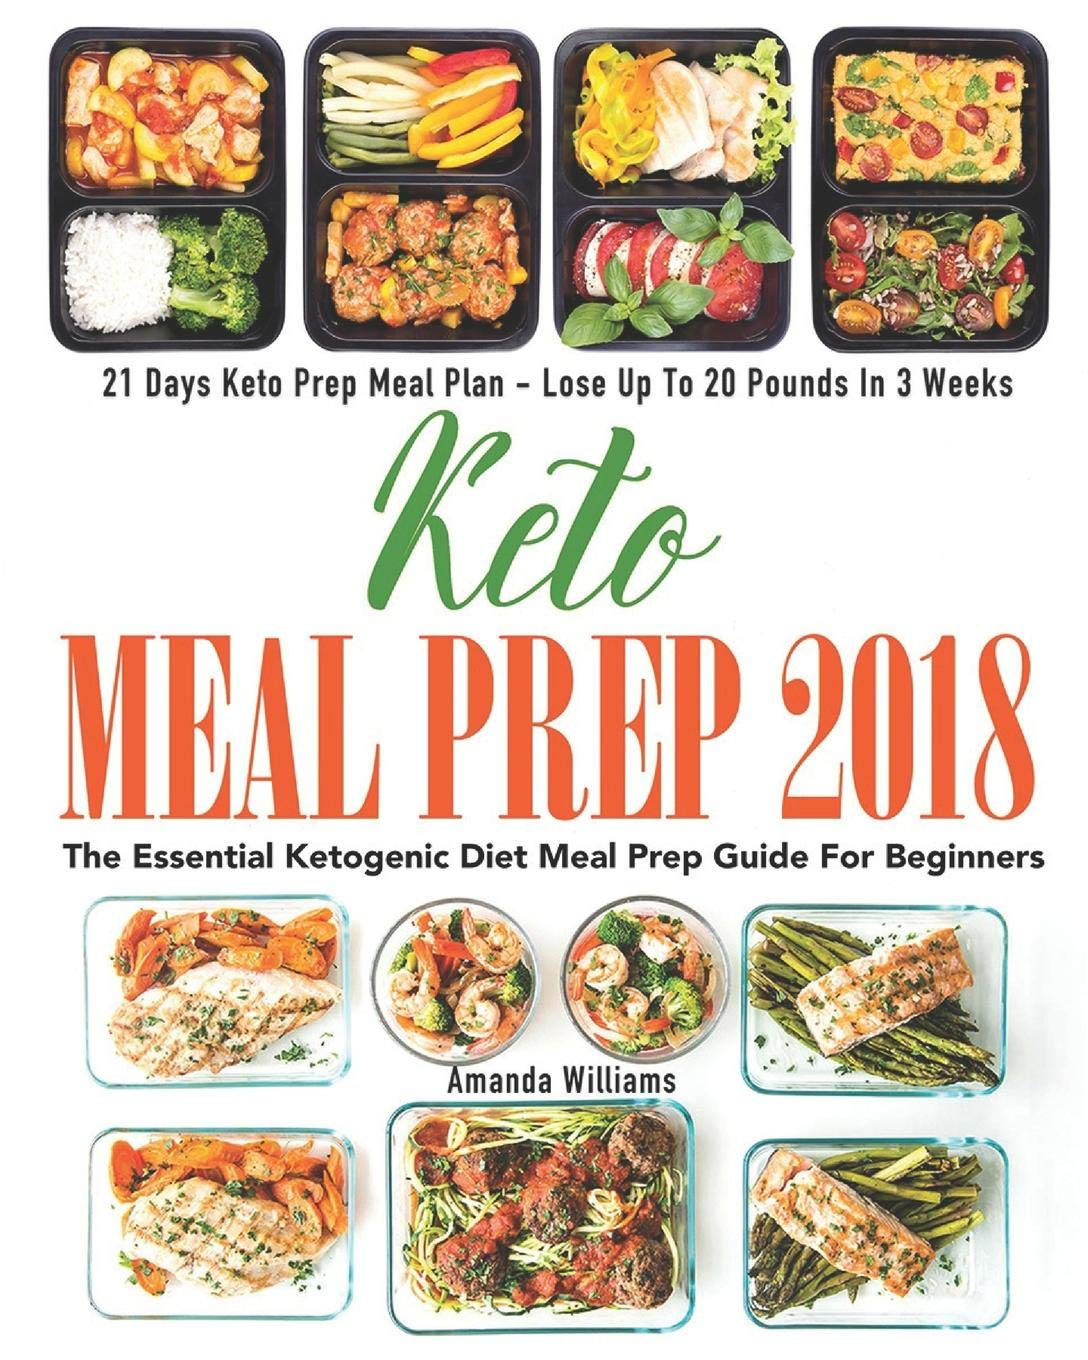 Keto Meal Prep 2018 The Essential Ketogenic Diet Meal Prep Guide For Beginners 21 Days Keto Meal Prep Meal Plan Lose Up To 20 Pounds In 3 Weeks Williams Amanda 9781721867875 Amazon Com Books